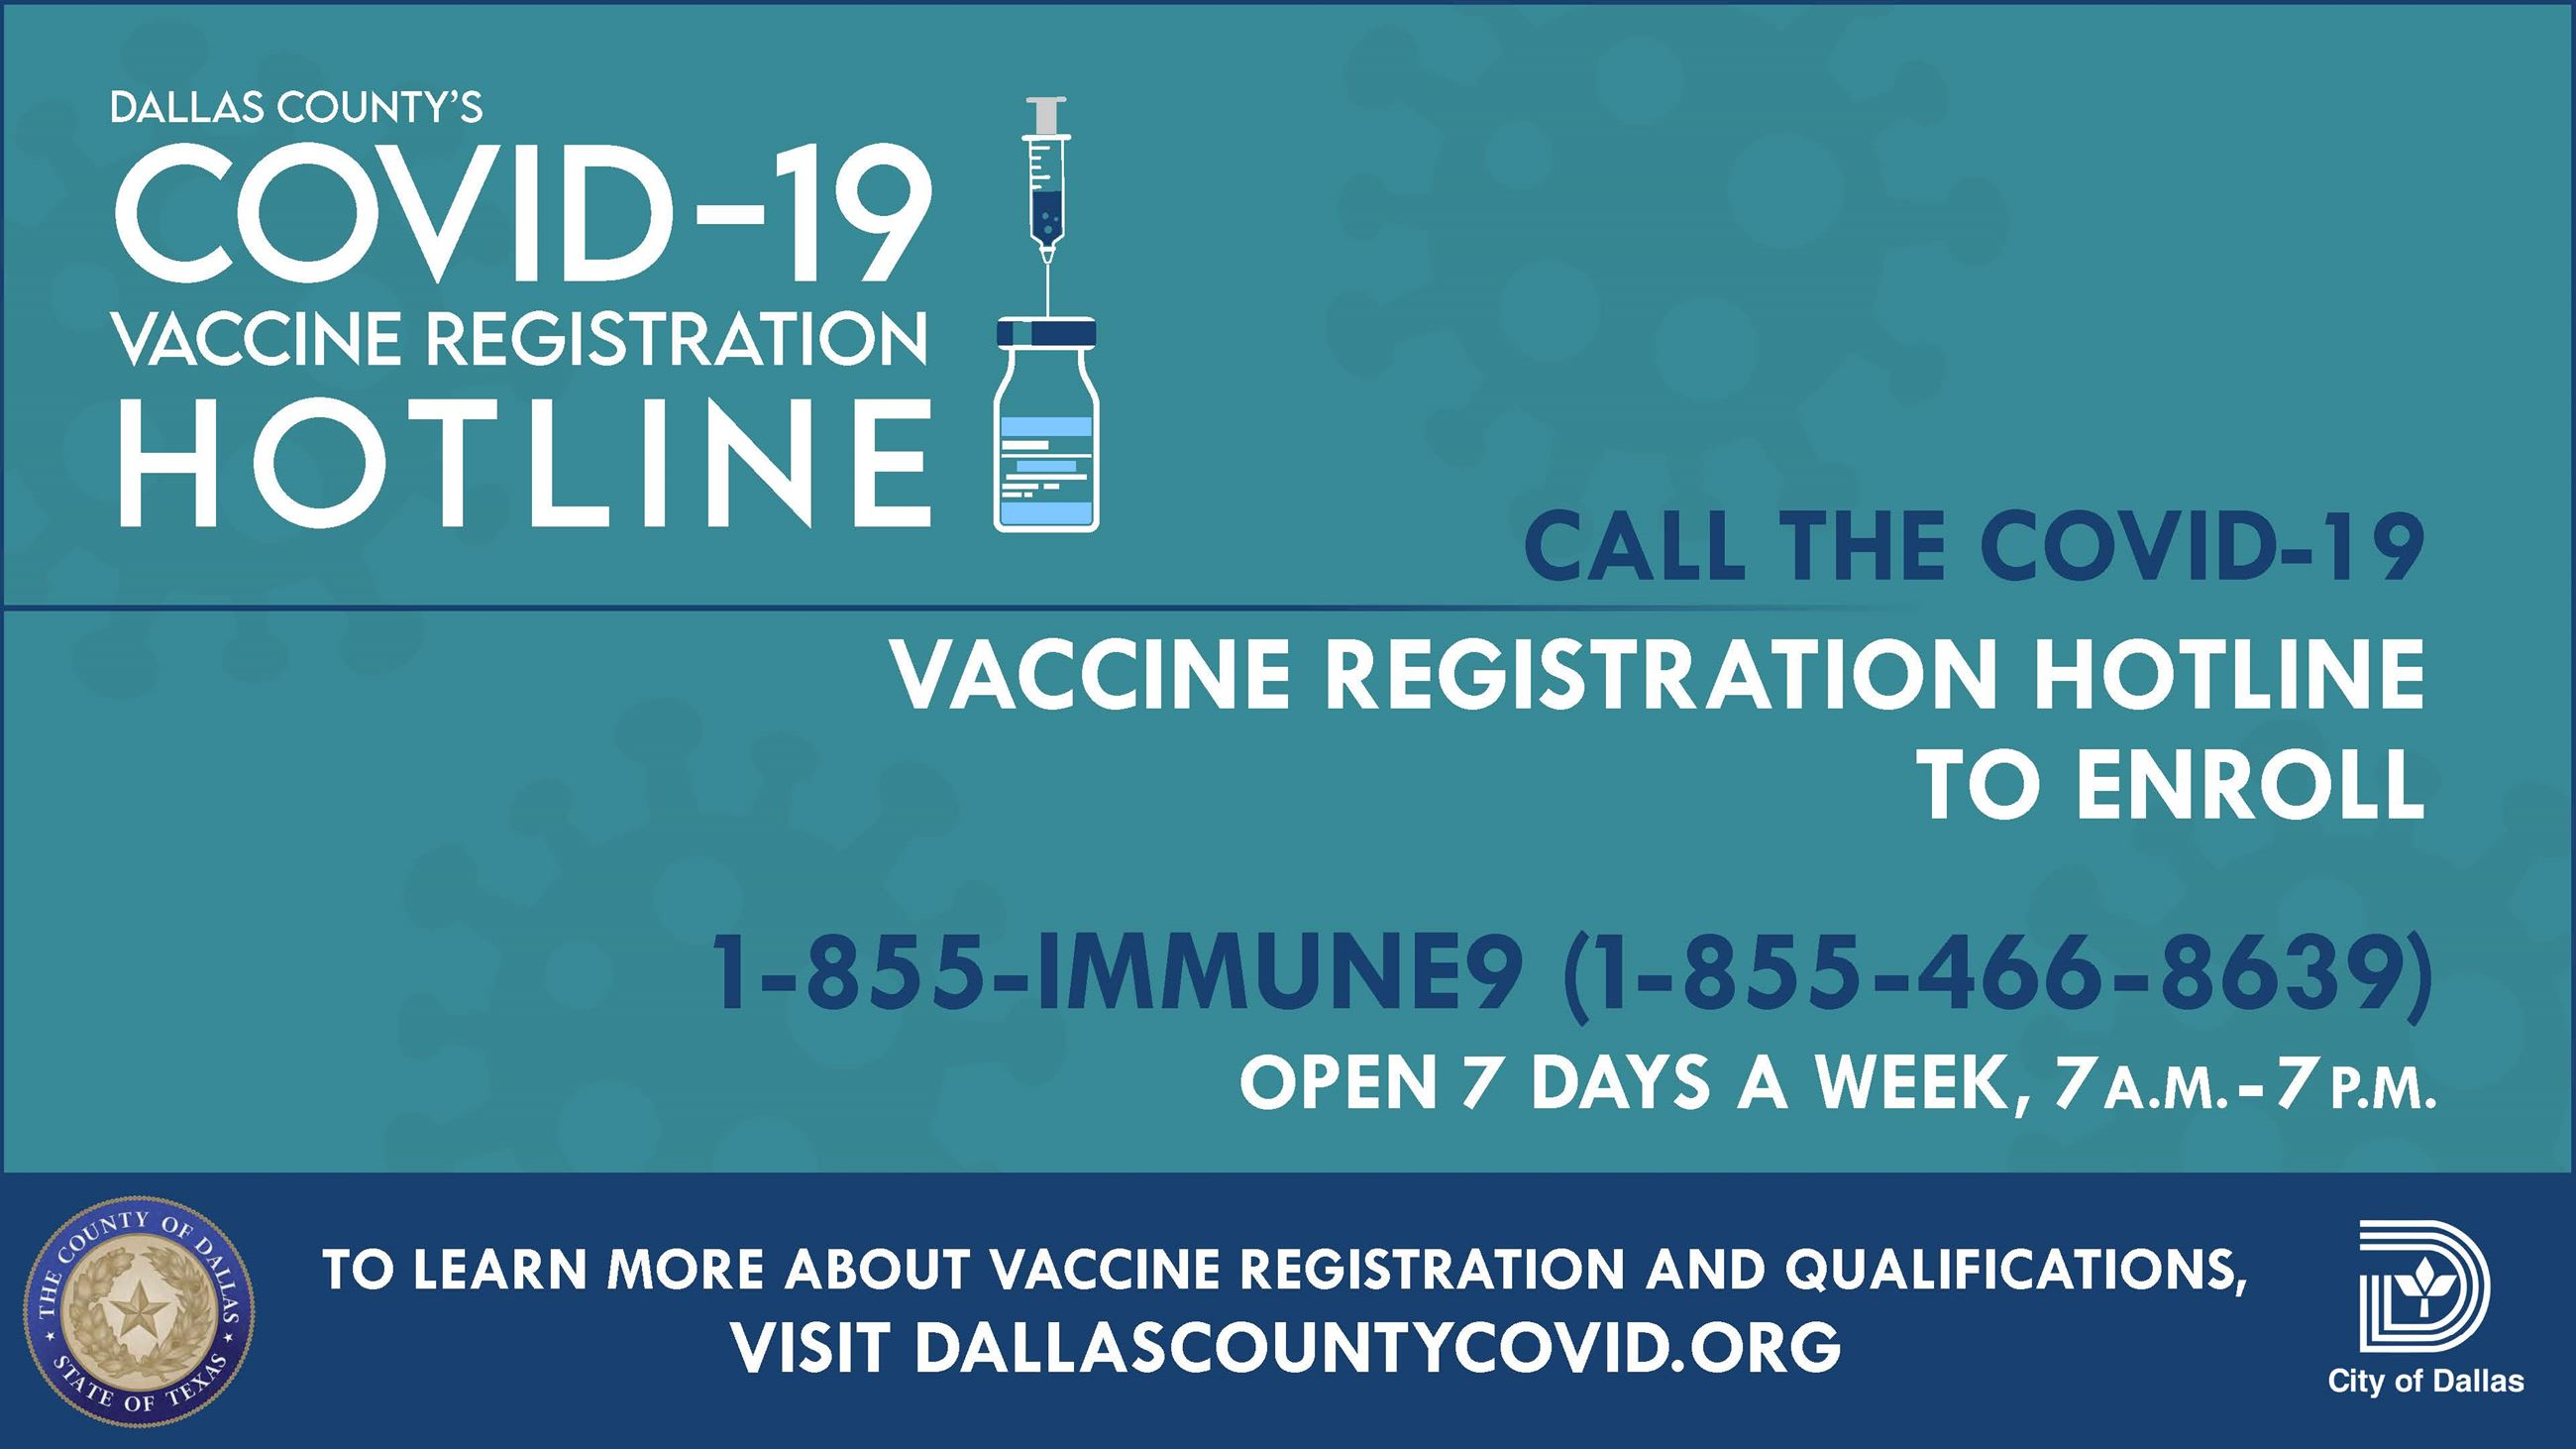 Dallas County COVID-19 Vaccine Registration Hotline: English